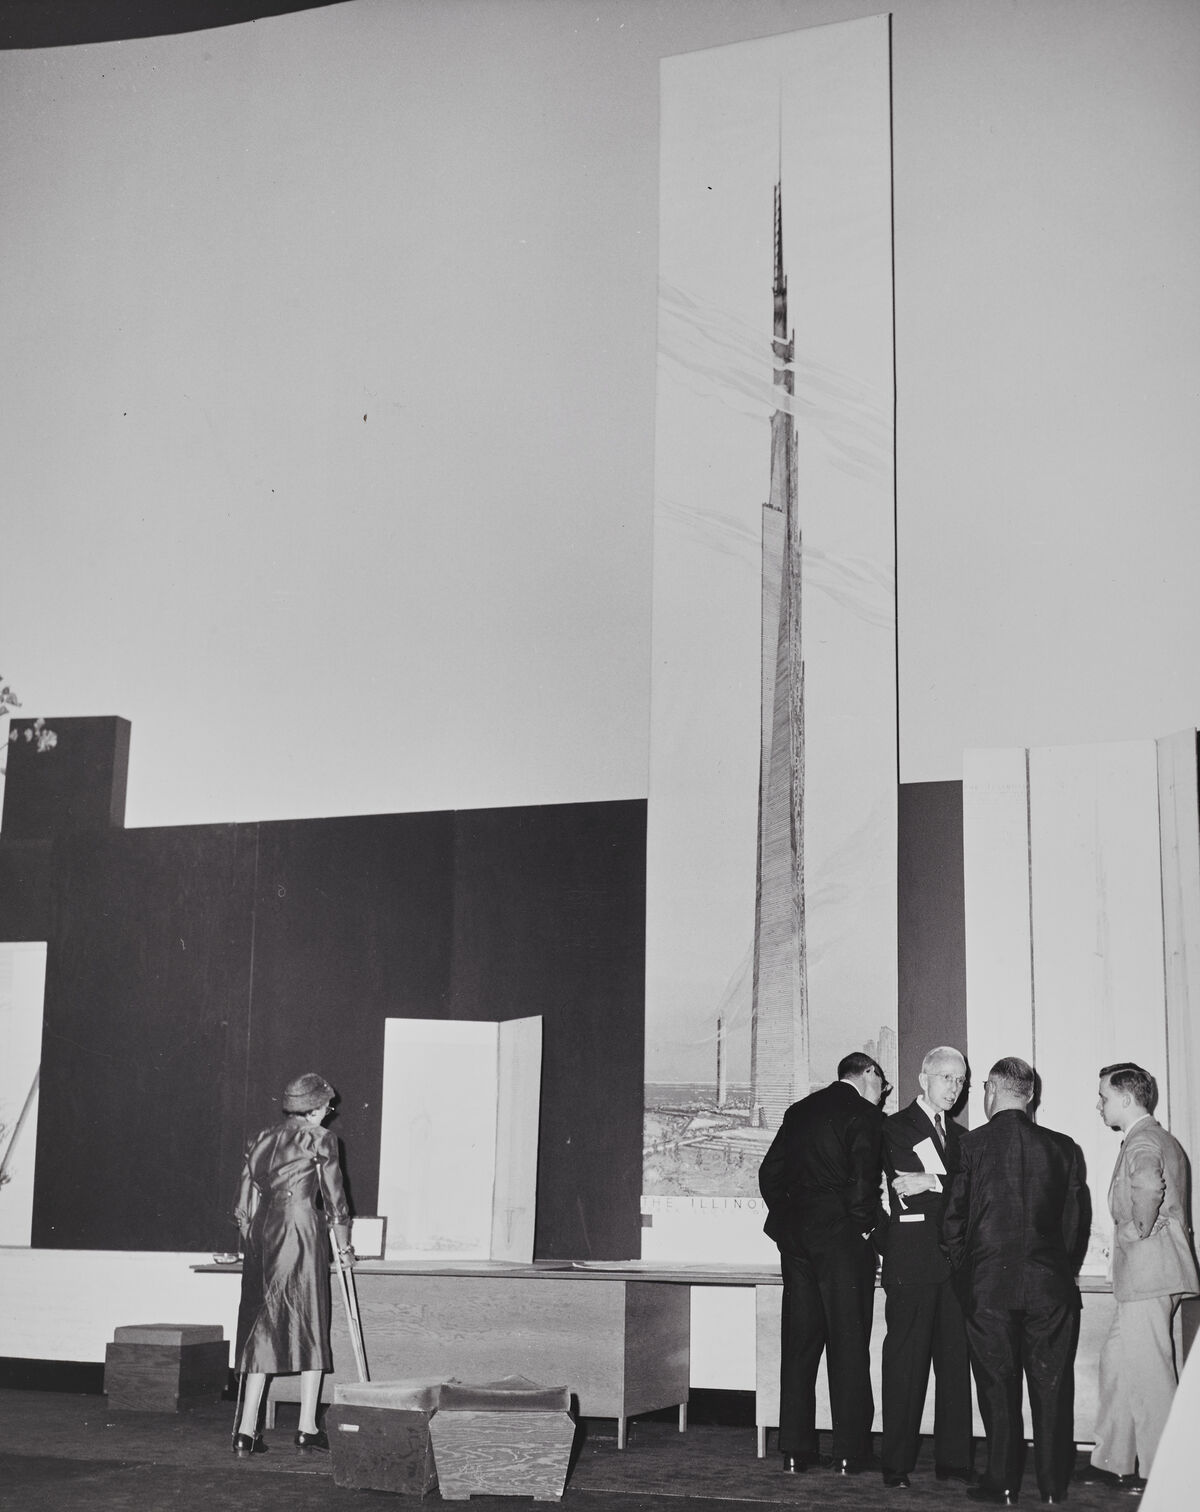 Unveiling the 22-foot-high (6.7-meter-high) visualization of The Mile-High Illinois at the October 16, 1956, press conference in Chicago. Courtesy of the Frank Lloyd Wright (the Museum of Modern Art | Avery Architectural & Fine Arts Library, Columbia University, New York).